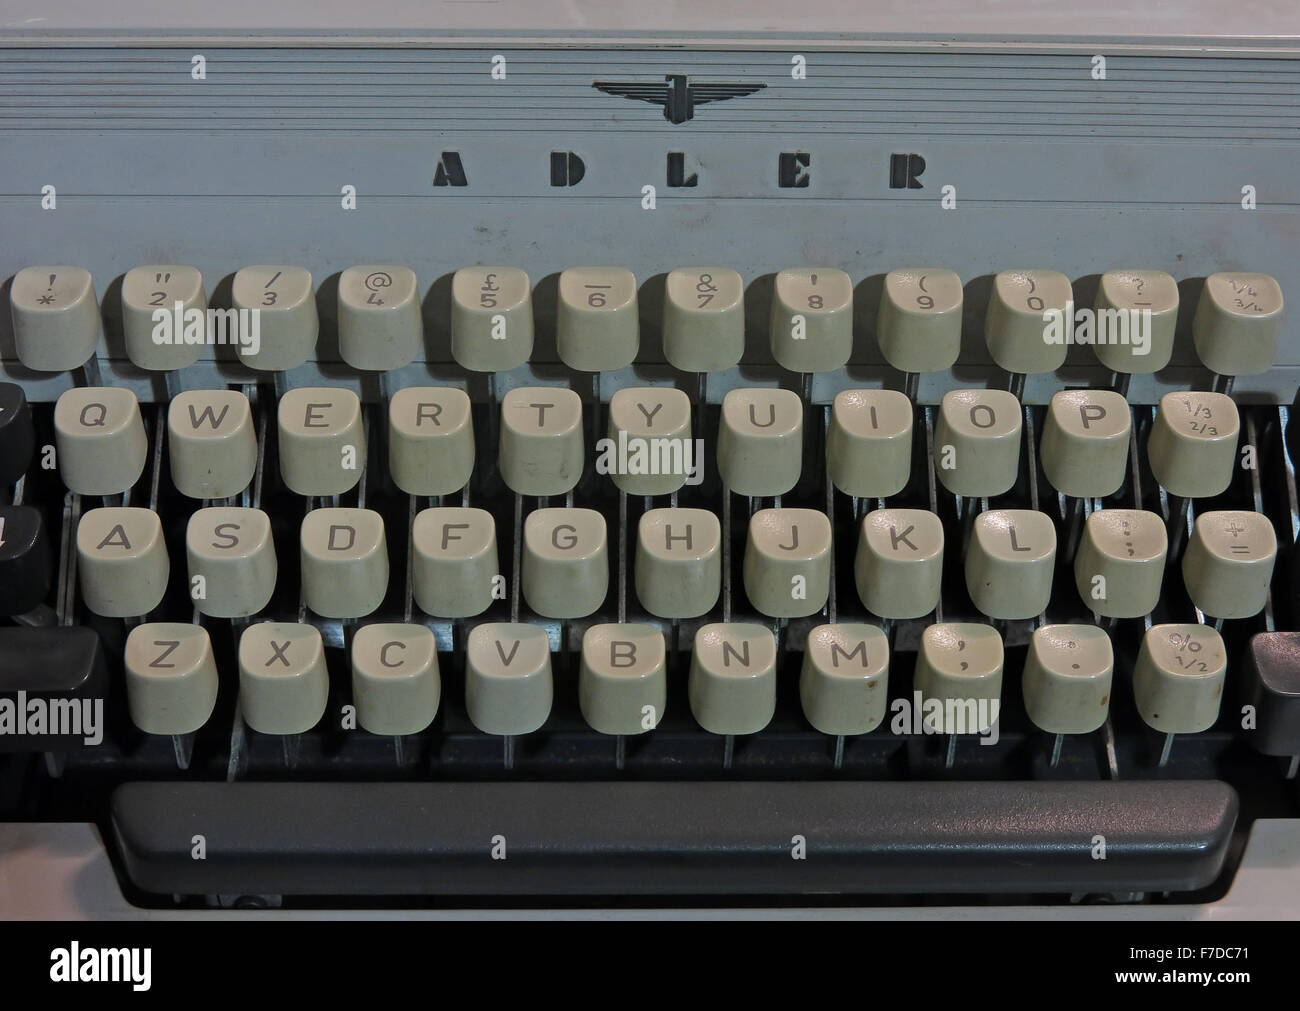 busines,letter,office,work,machine,technology,old,obsolete,tech,keys,keyboard,key,querty,retro,typed,azerty,vintage,brand,Gabriele,typewriter,author,tool,of,the,trade,Olivetti,company,TA,Royal,logo,old technology,Obsolete Technology,Tool,of,the,trade,GoTonySmith,Buy Pictures of,Buy Images Of